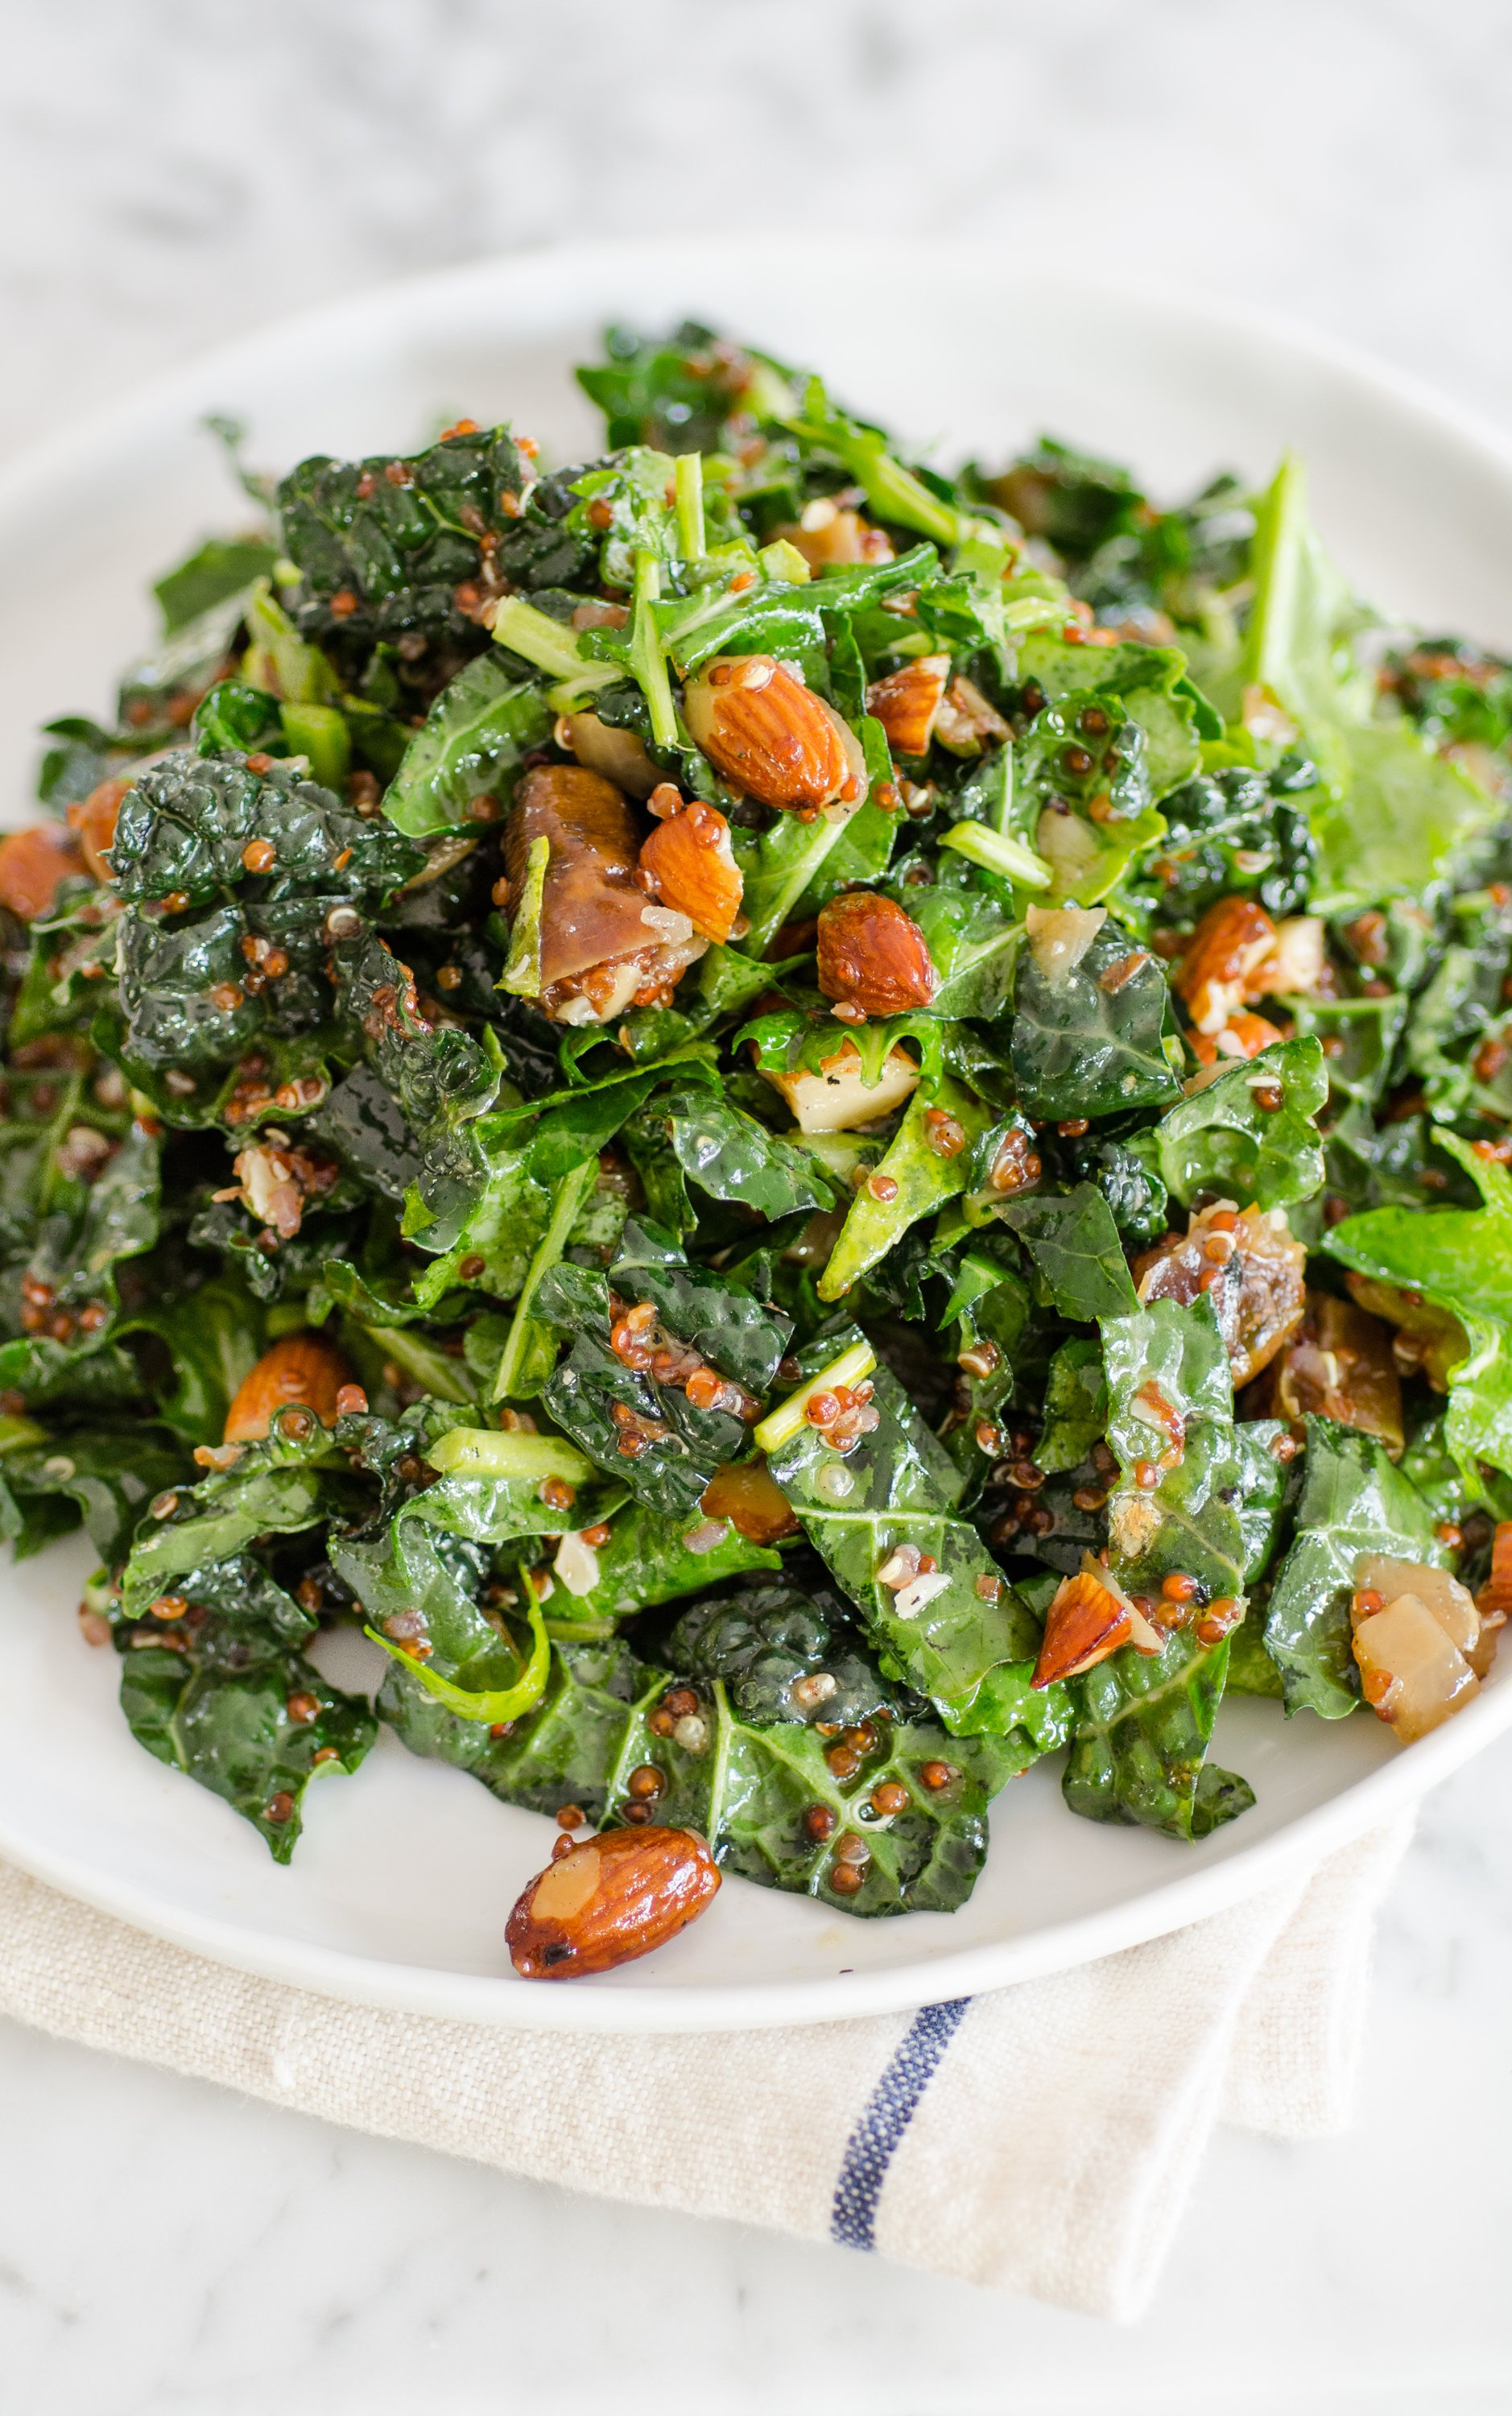 Recipe: Kale & Quinoa Salad with Dates, Almonds & Citrus Dressing | Kitchn